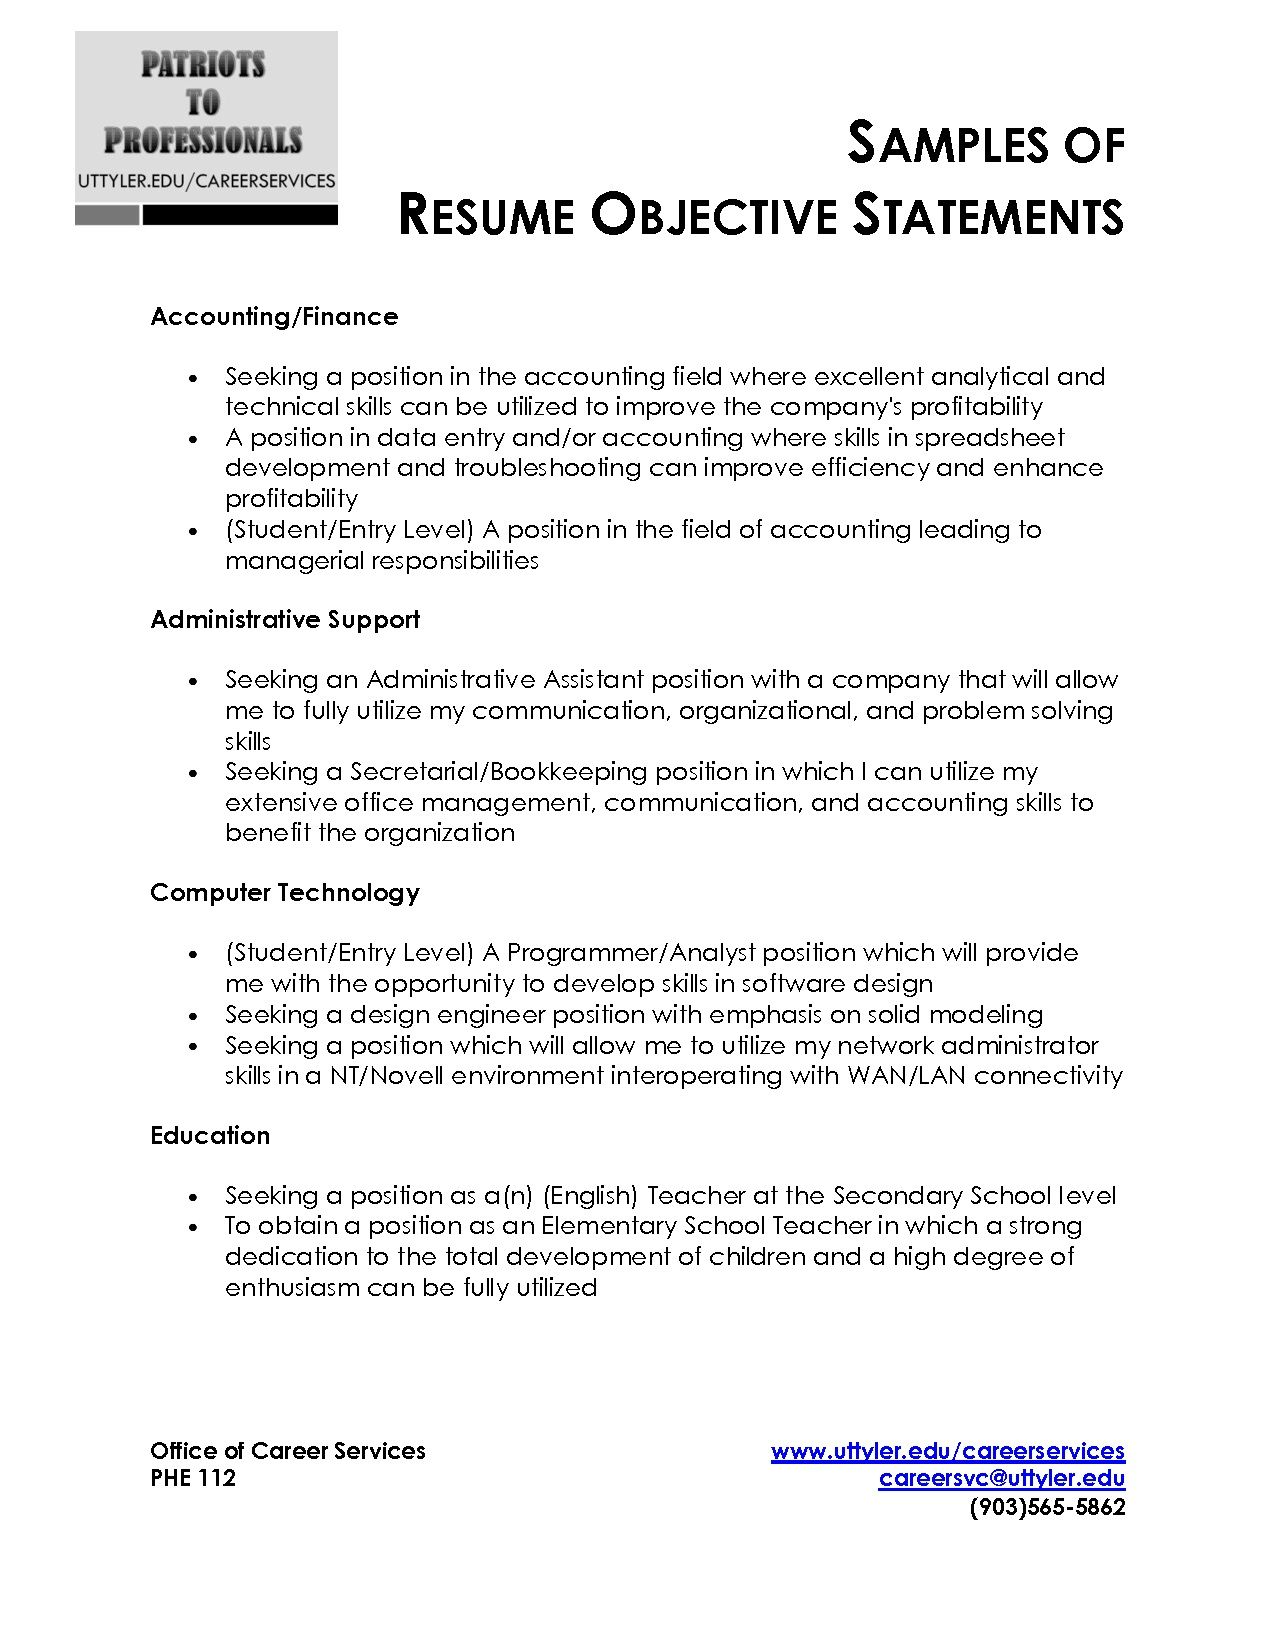 sample resume objective statement free templates examples good for strong statements hult Resume Strong Resume Objective Statements